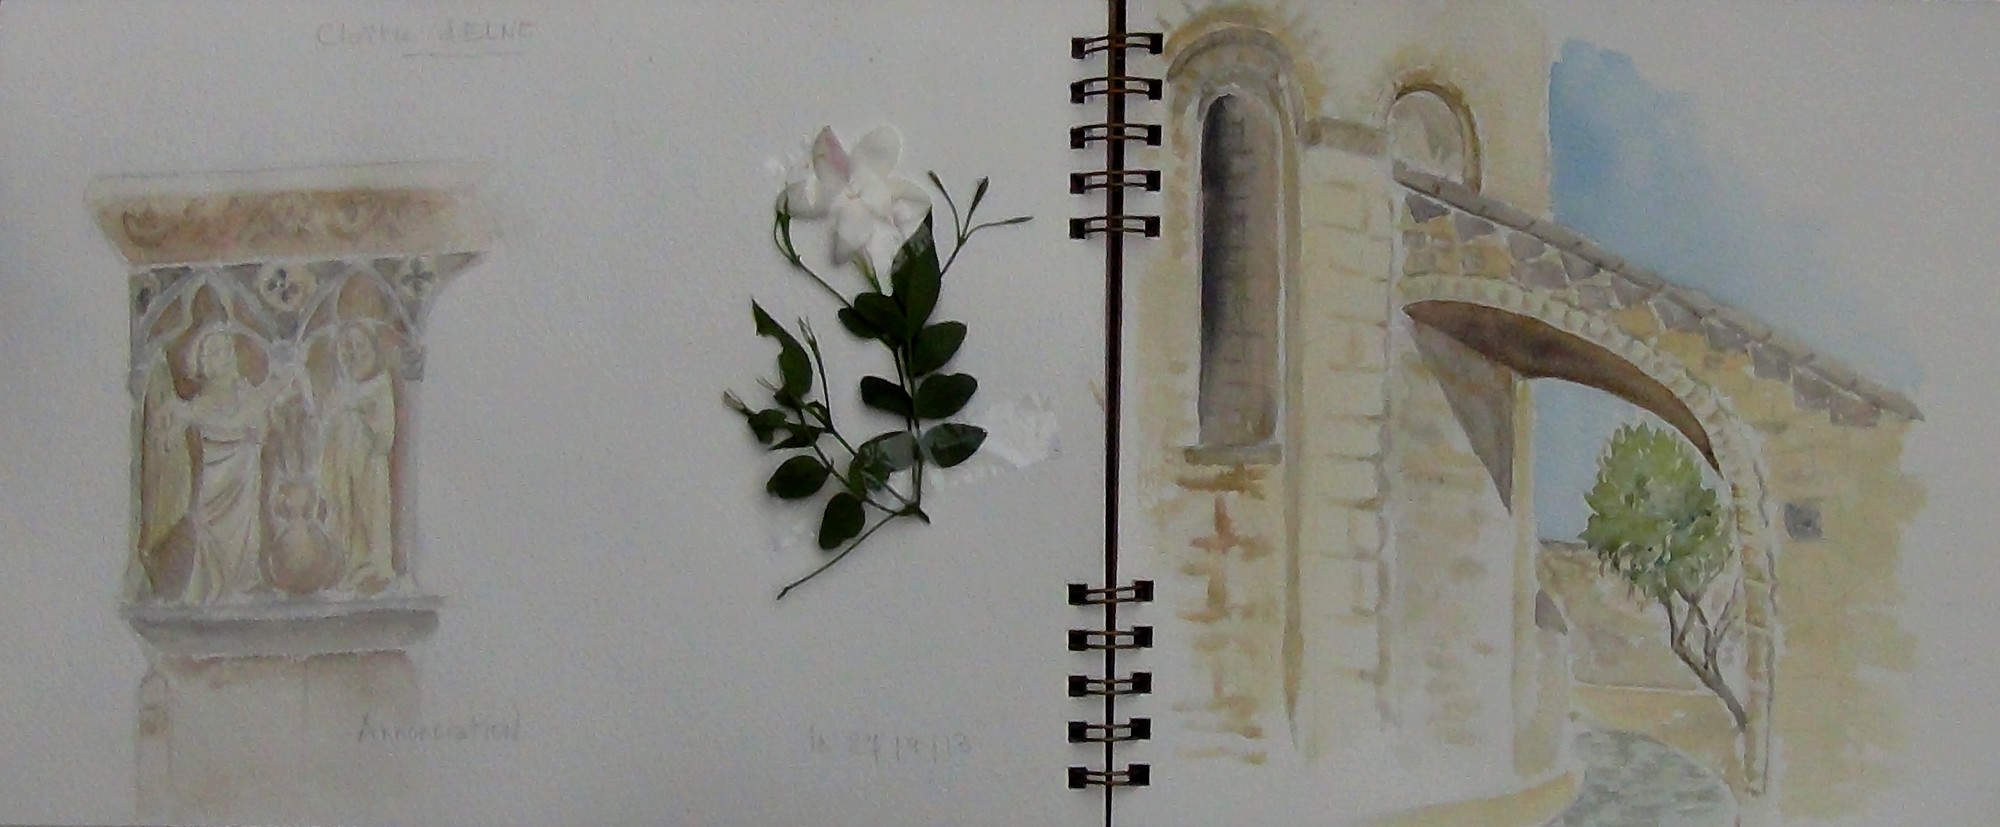 PAGE CARNET ANNICK